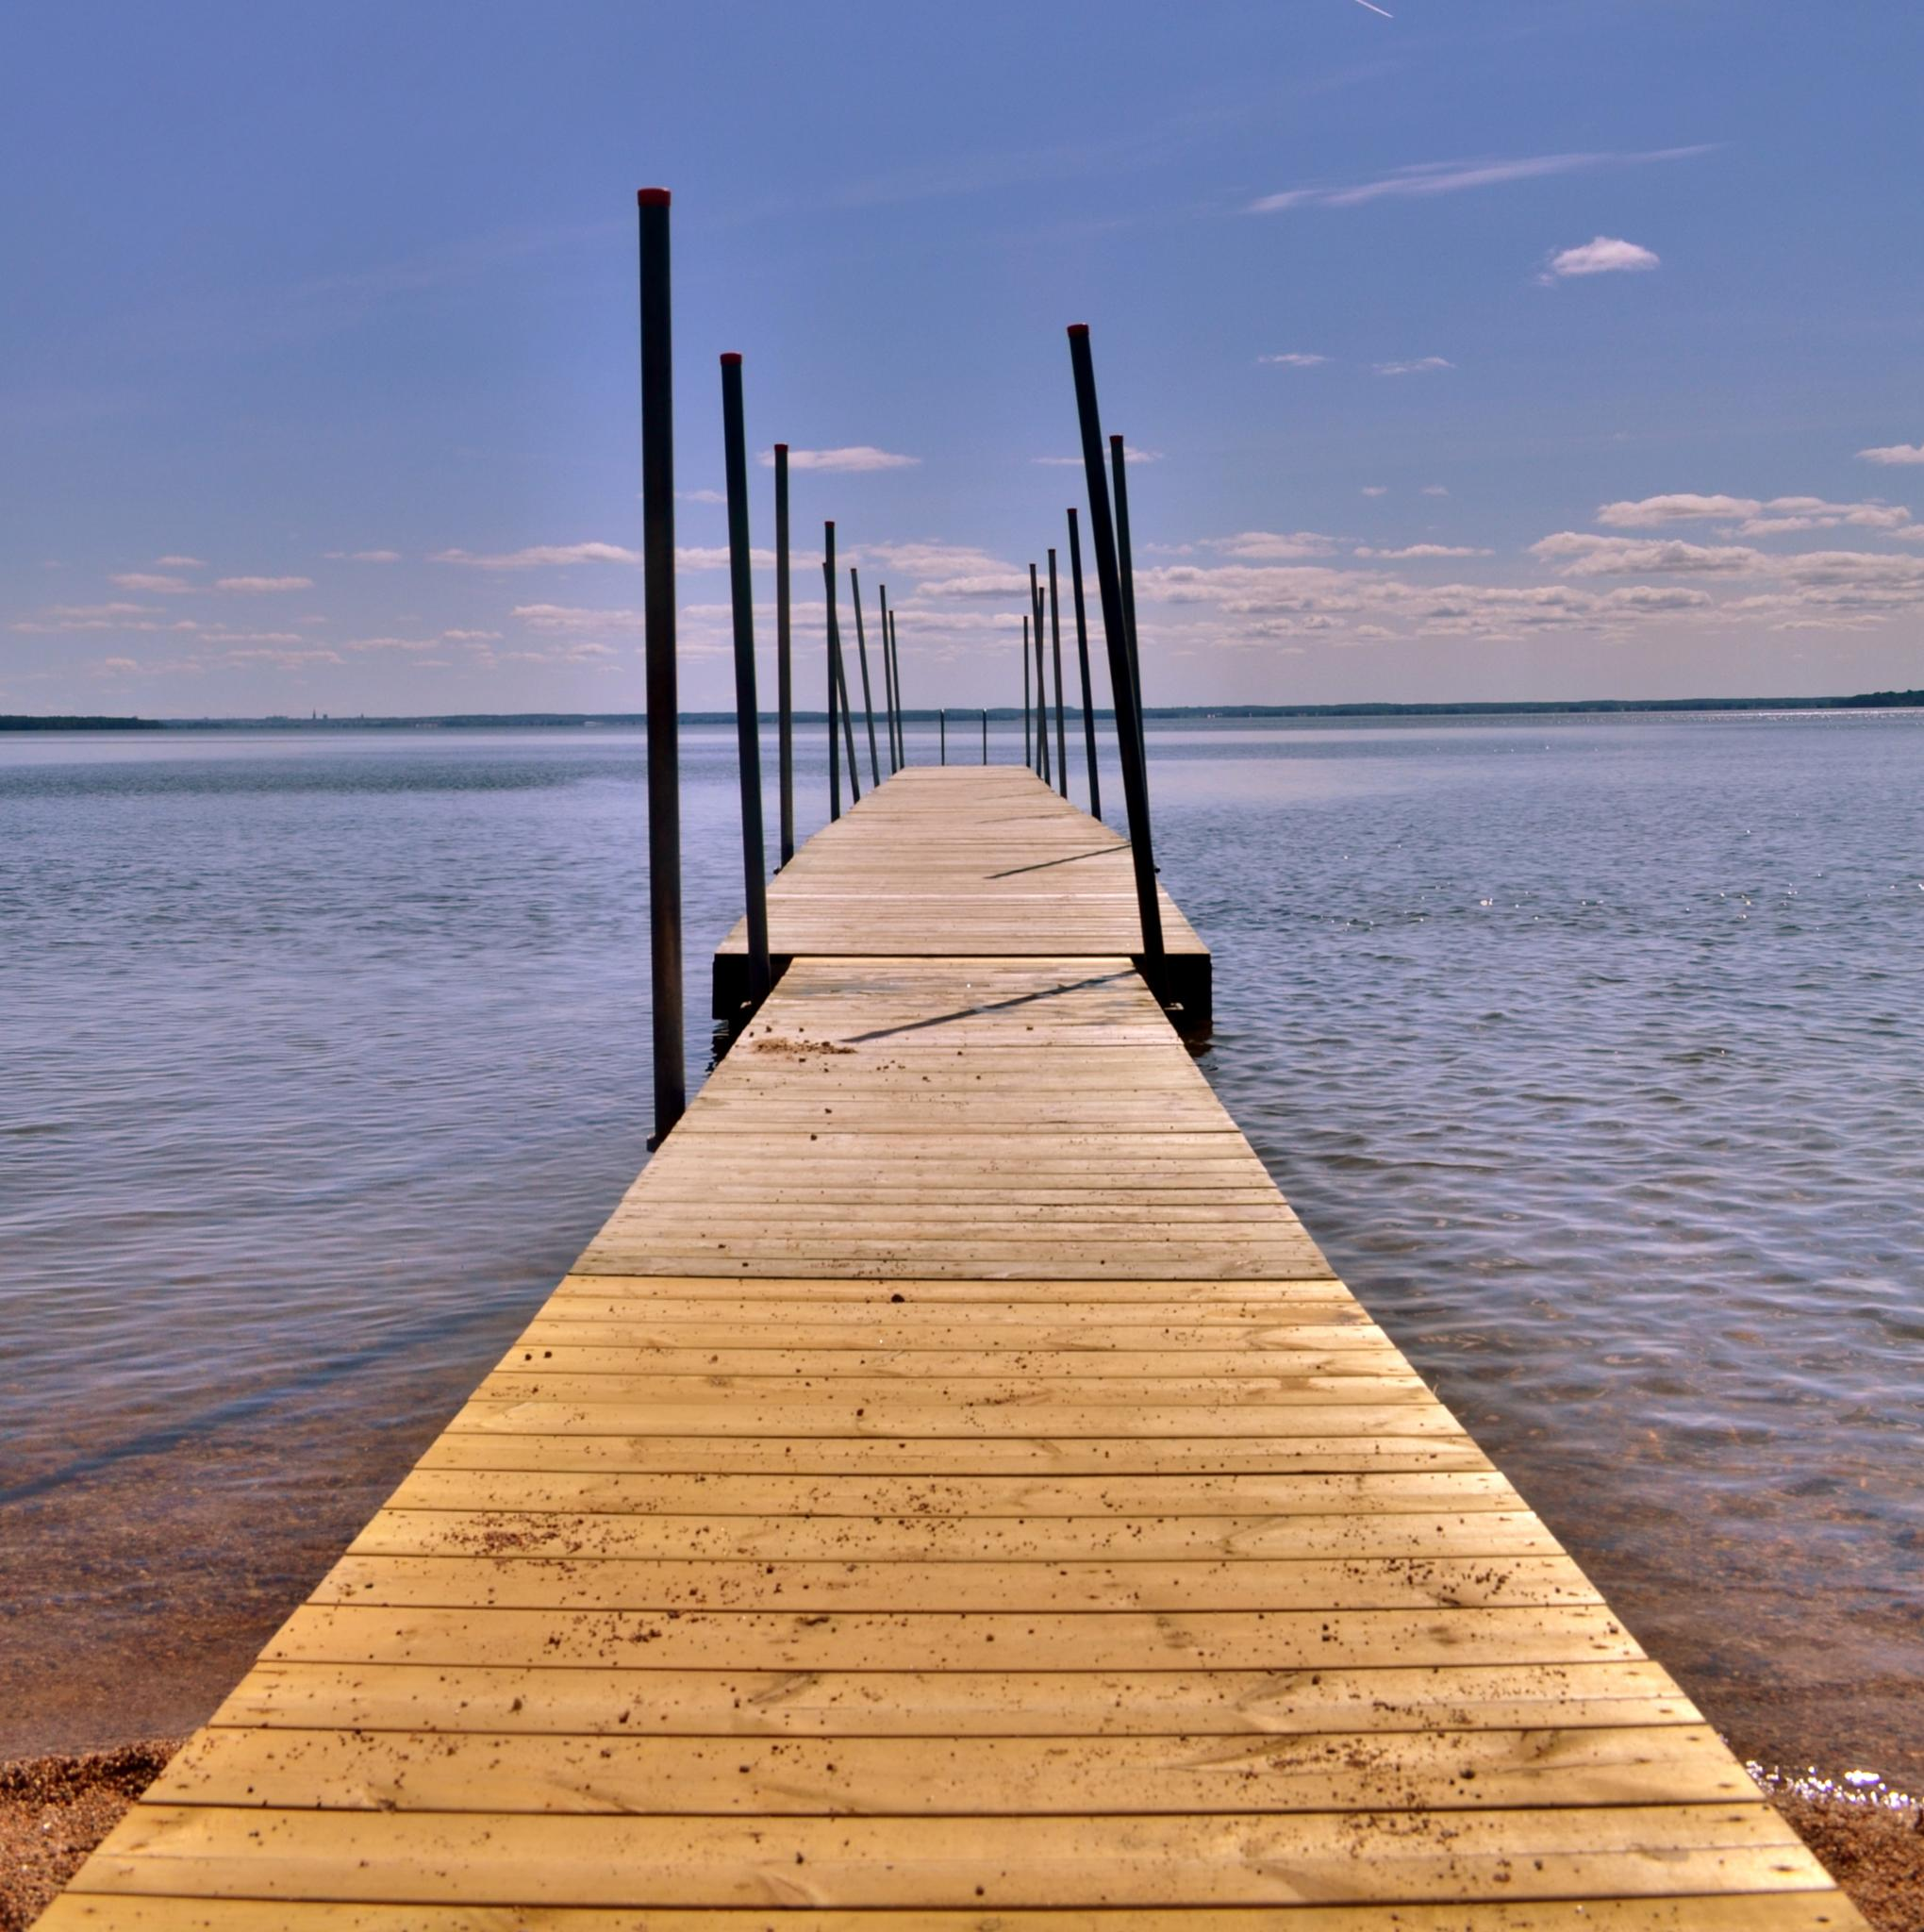 Summer and time for swimming by rollepersson